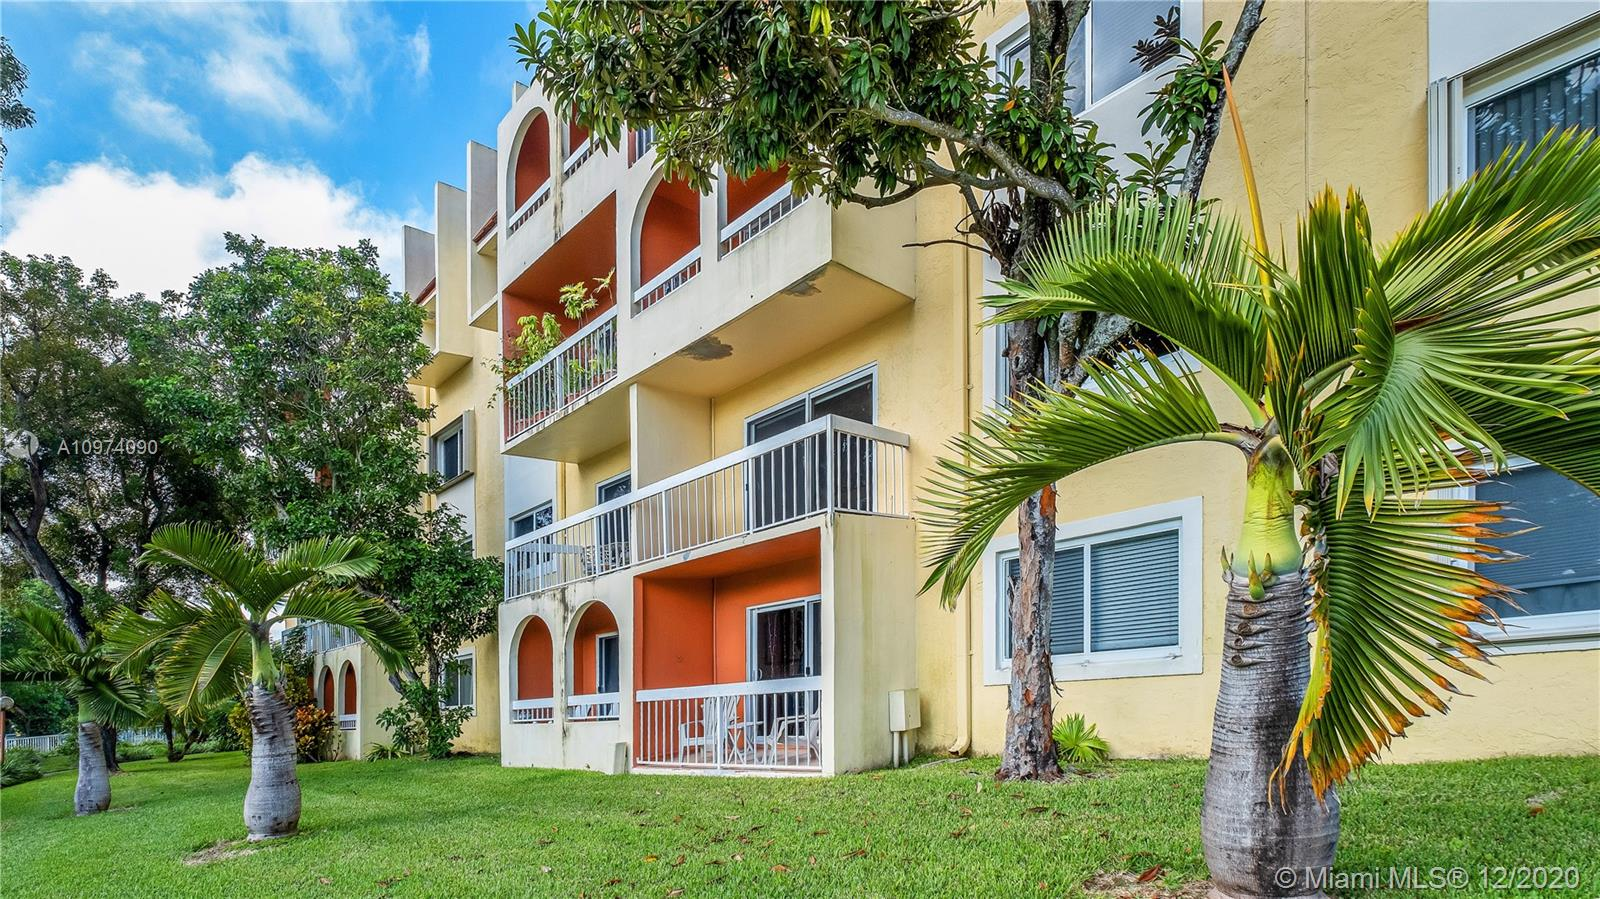 LOCATION LOCATION LOCATION! Best Location in Kendall.  Walking distance from the infamous Dadeland Shopping Mall, restaurants, bars, big box retail, and much more... Easy access to major highways (US-1, 874, 869, Palmetto 826, and Turnpike). Located walking distance to Dadeland Transit Center w Metro Rail and Buses. Easy commute to Downtown, Grove, Gables area. Remodeled 1/1 unit with laminate floors, stainless steel appliances, new AC, new closet doors, impact storm windows, and fresh paint! Walk-in closet. READY TO MOVE IN & MANY AMENITIES (3 pools, gym, laundry machines on each floor, bbq areas, and more). Many guest parking spaces and easy to find space. 24 hour security and gated. LOW MONTHLY HOA FEES, which include insurance, water, and cable...EASY TO SHOW, DONT MISS OUT!